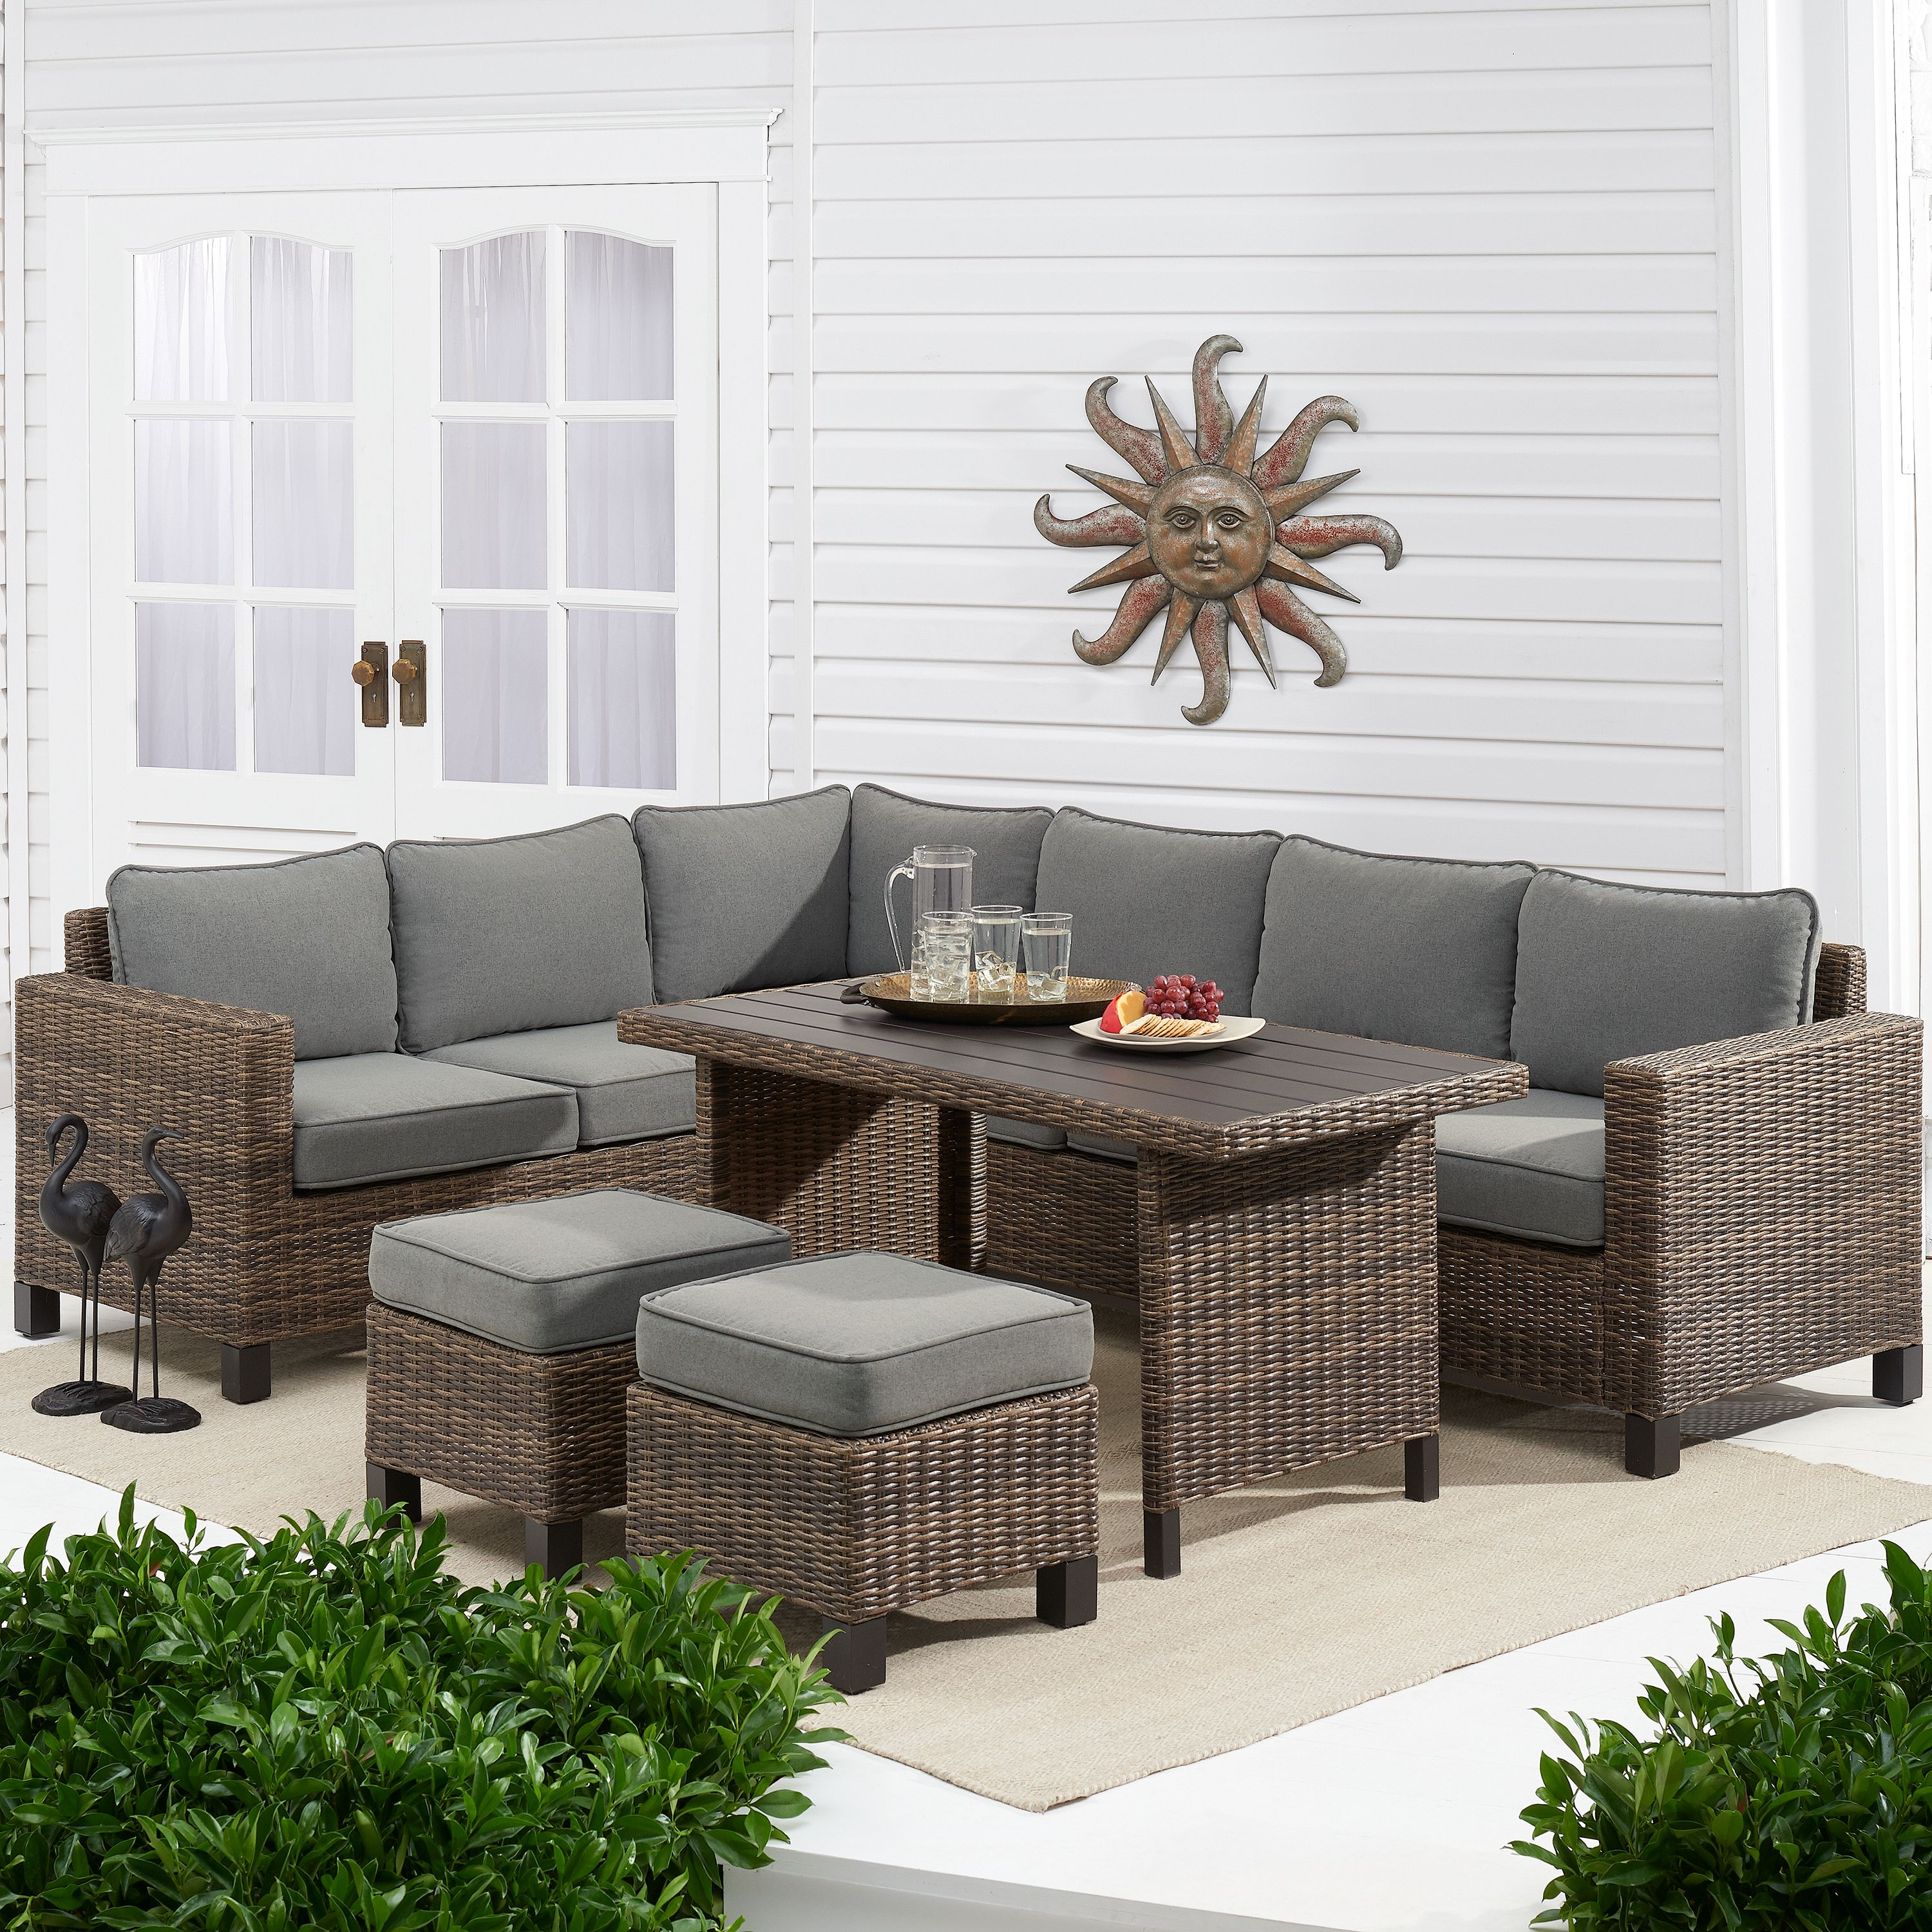 Patio Garden Teak Patio Furniture Patio Furniture Sets